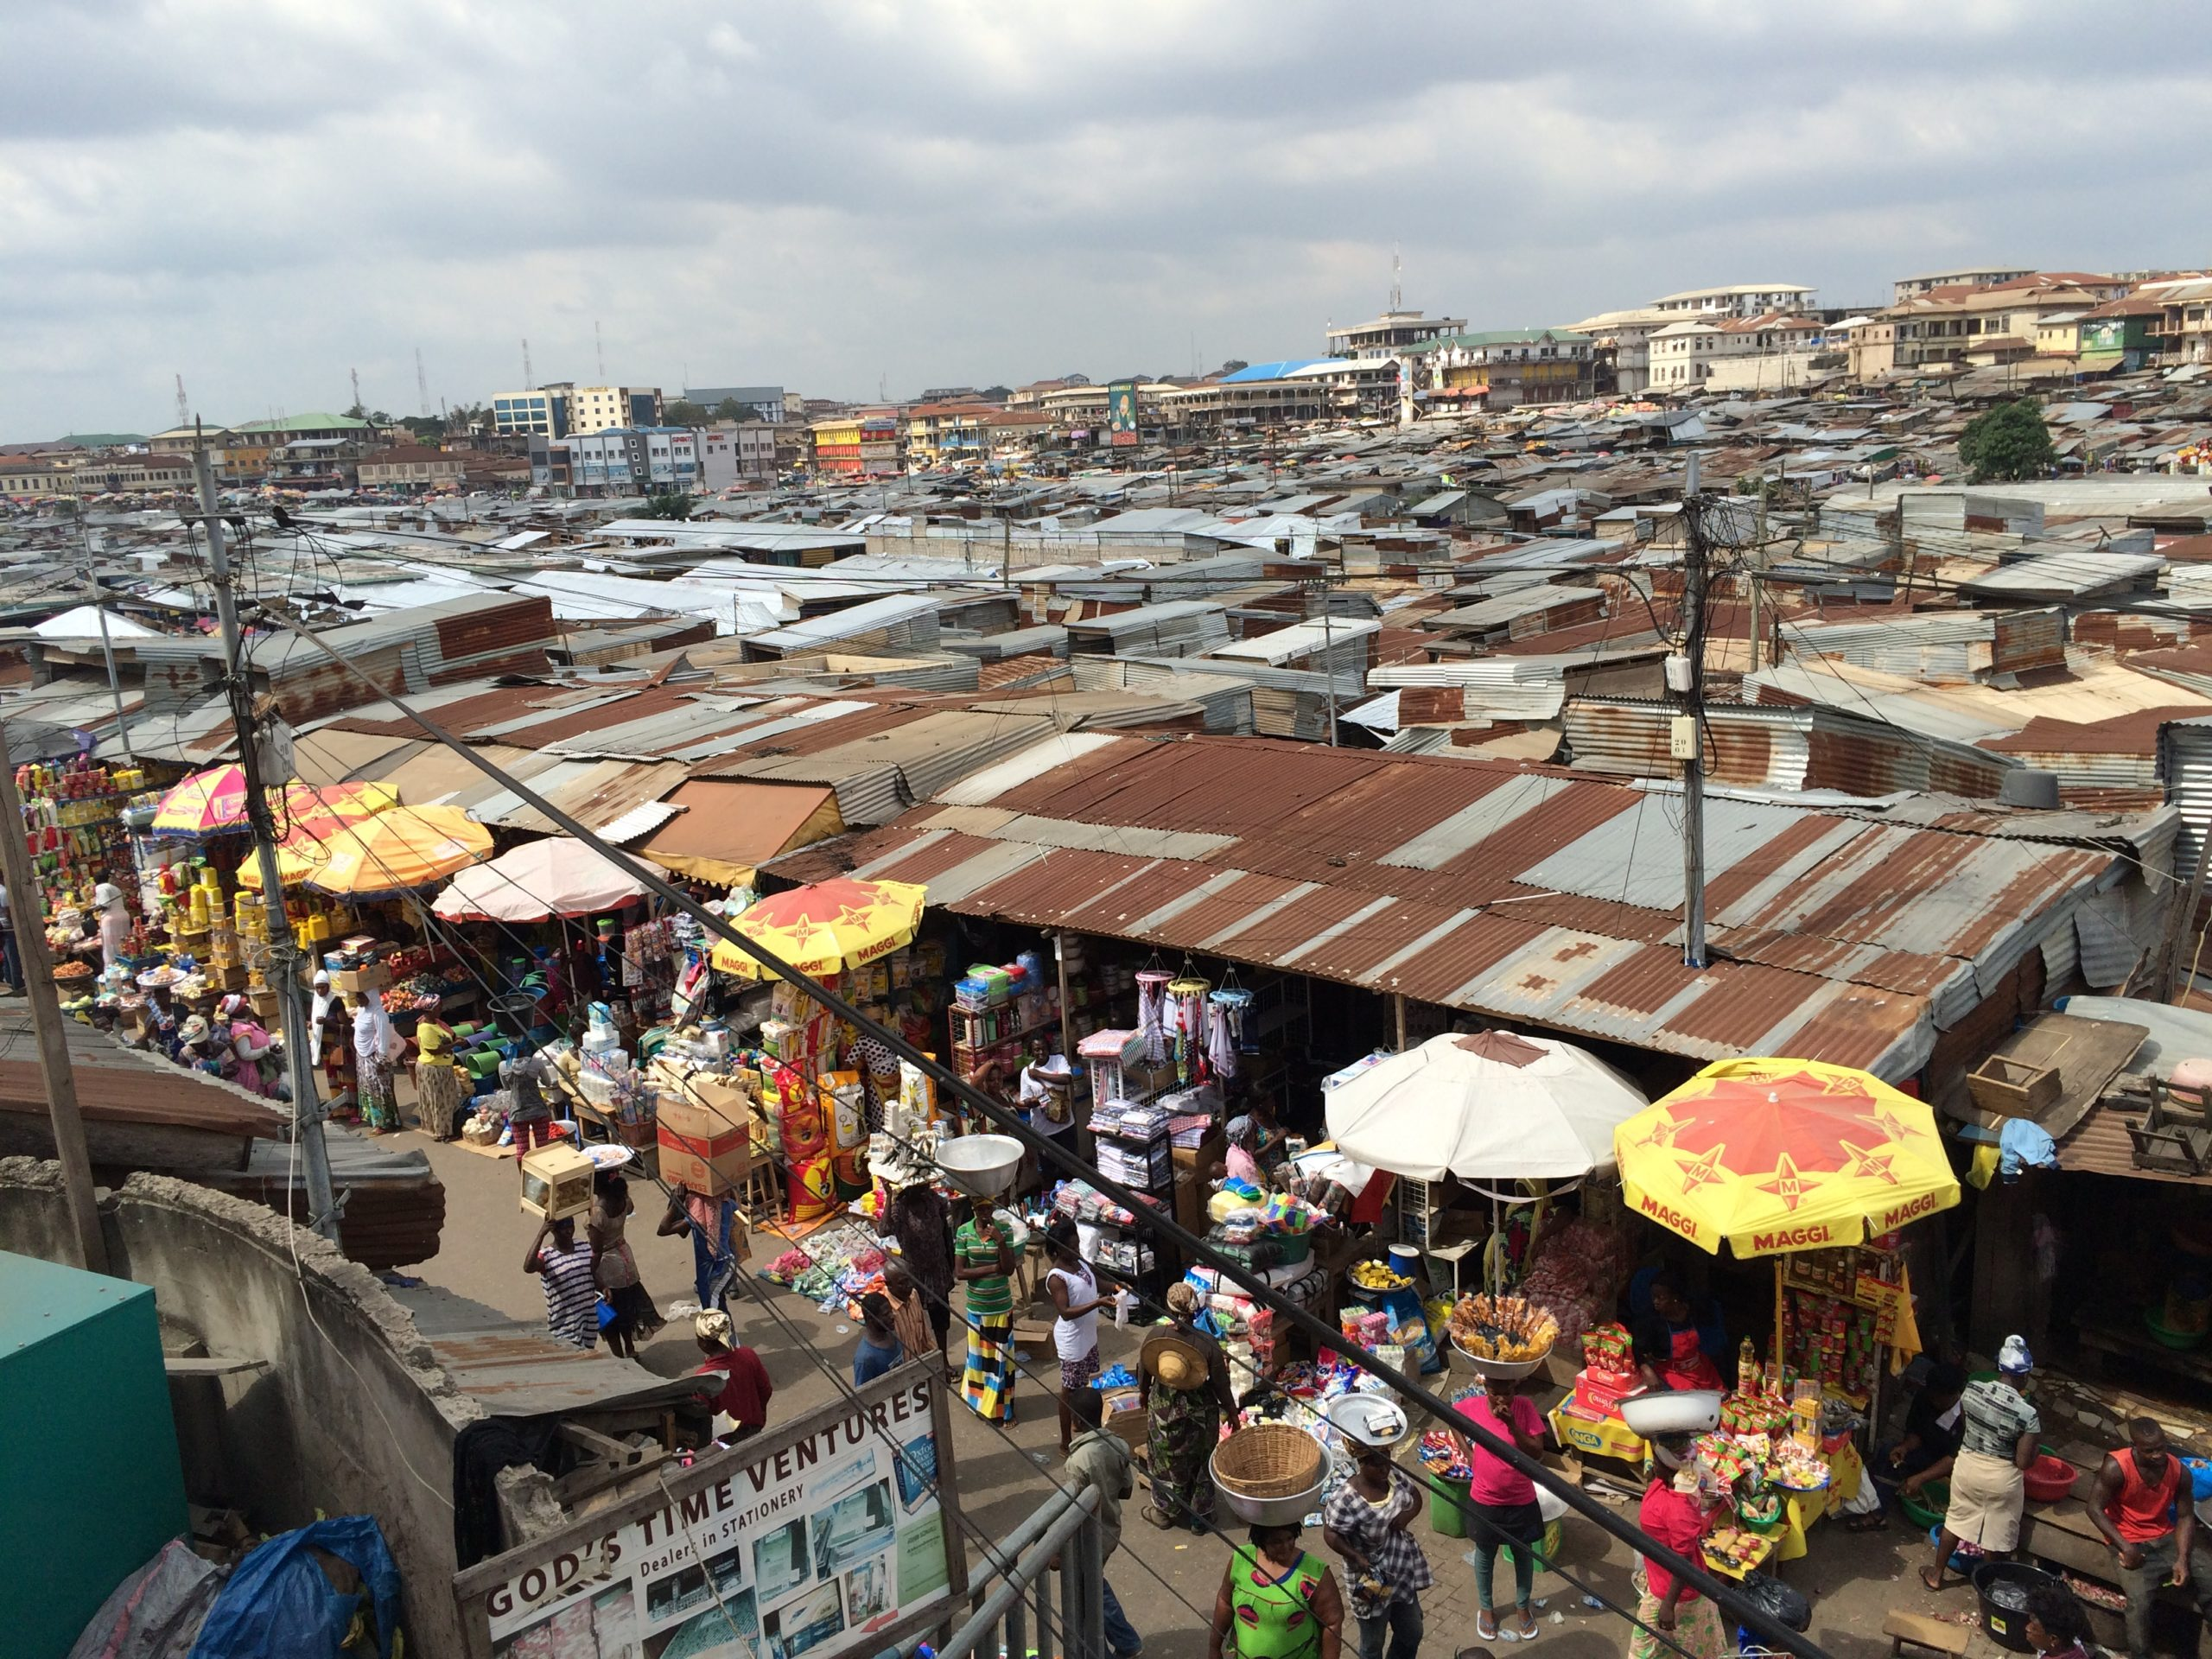 Men and women carry baskets and boxes of goods on their heads on a busy street in Kumasi Central Market.